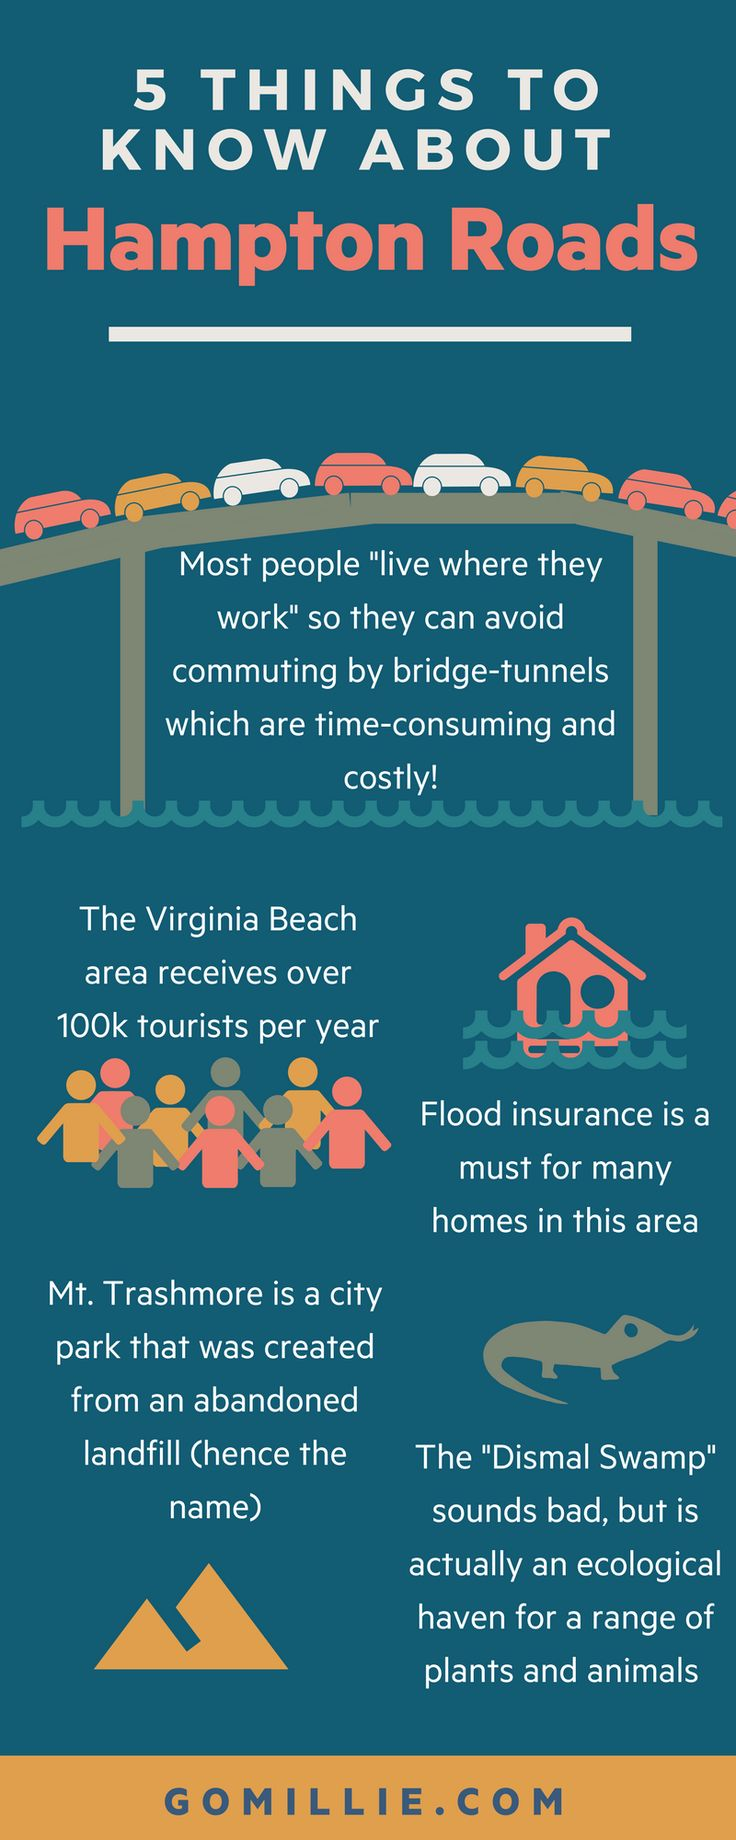 5 Things to know about Hampton Roads Visit gomillie.com for more information on Hampton Roads.